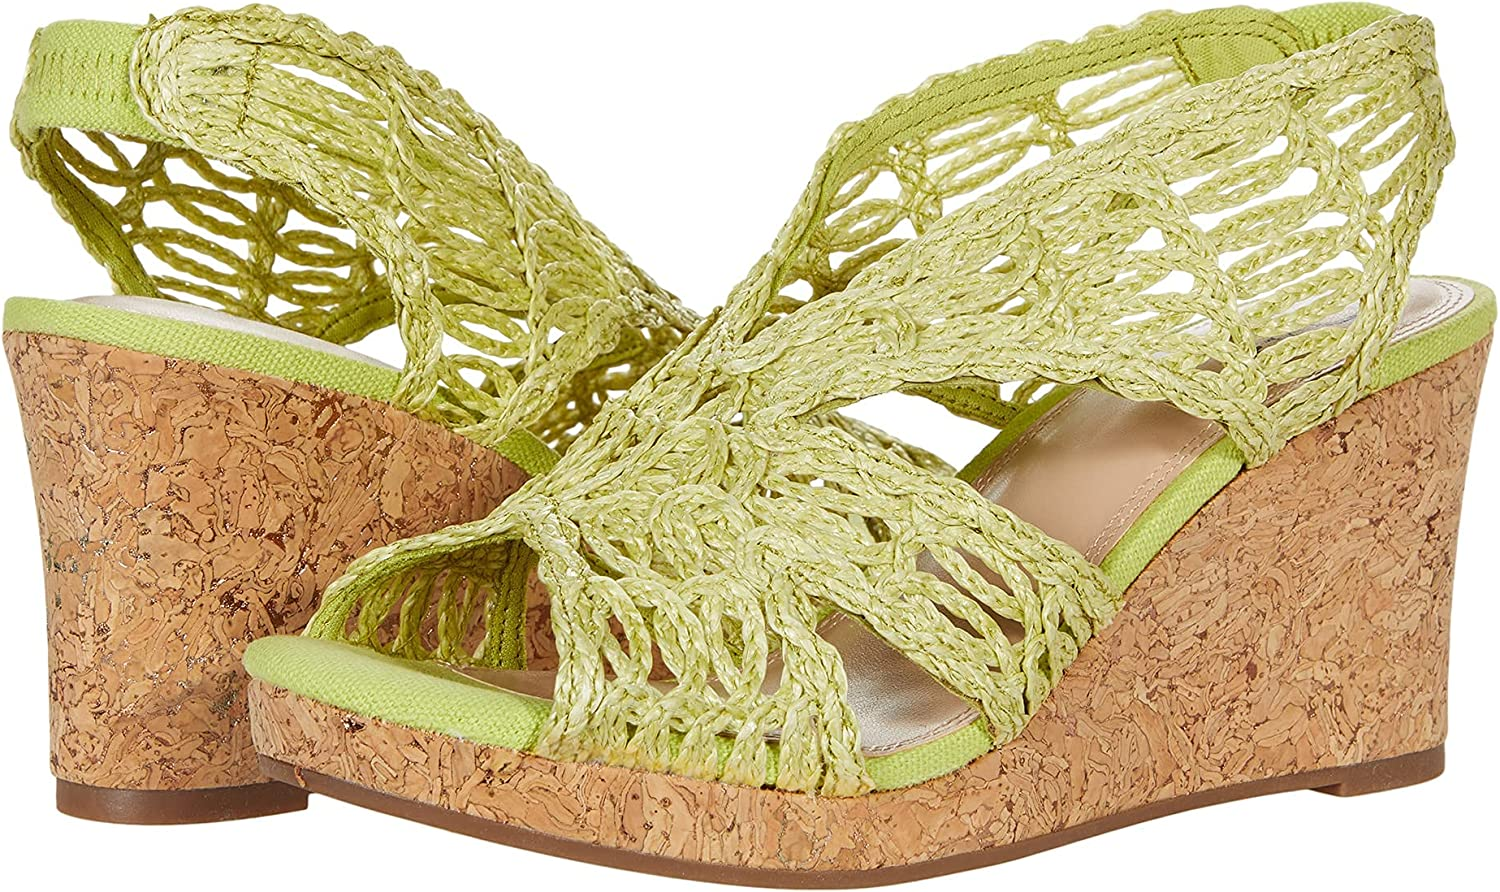 Impo TERINEE Large-scale sale Woven Raffia Platform Memory Foam with Sandal Wedge Max 52% OFF